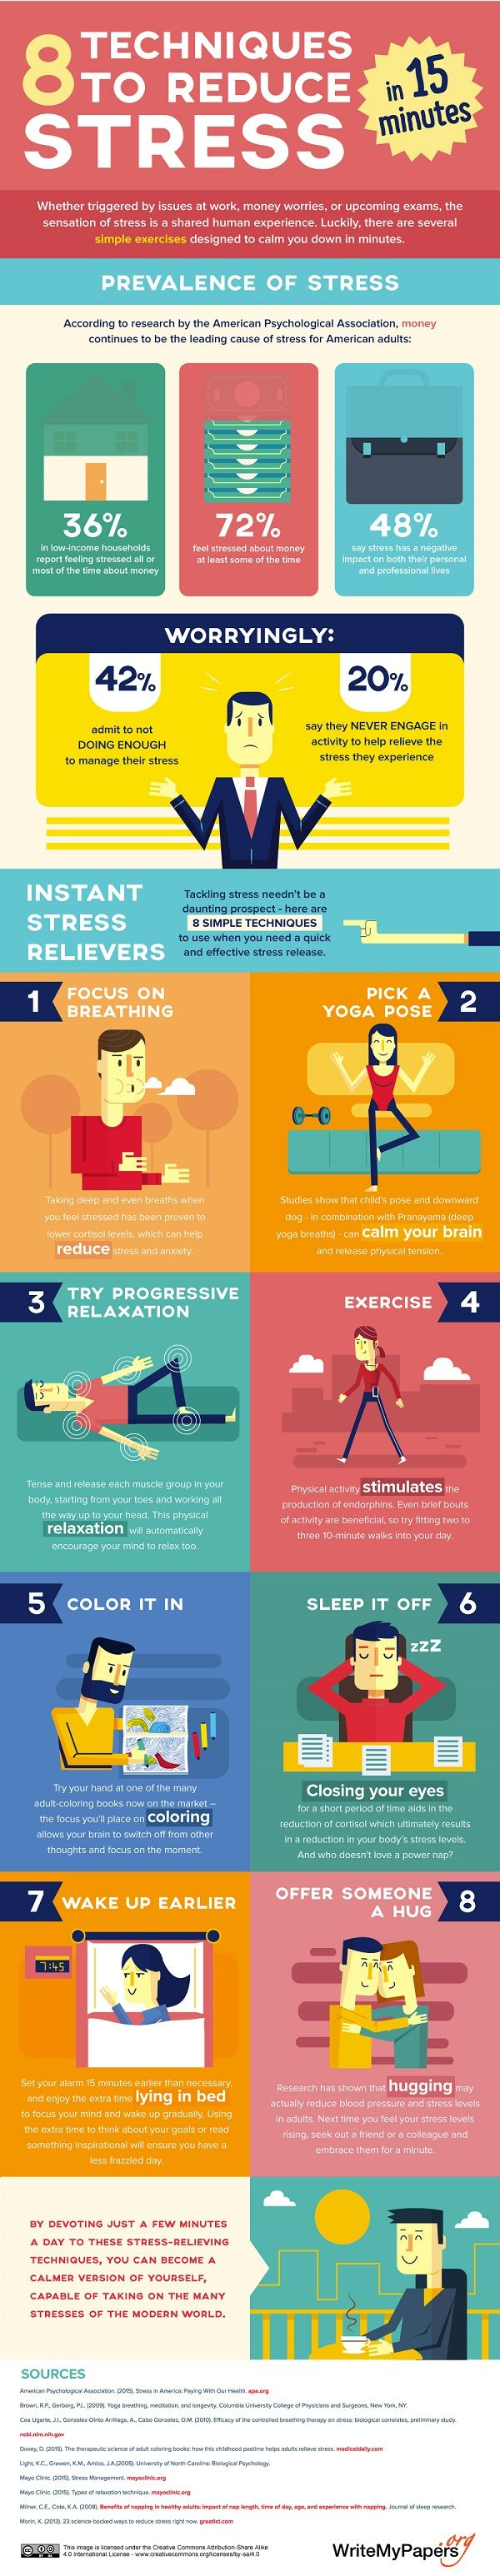 Infographic: Eight Techniques To Reduce Stress In 15 Minutes - DesignTAXI.com